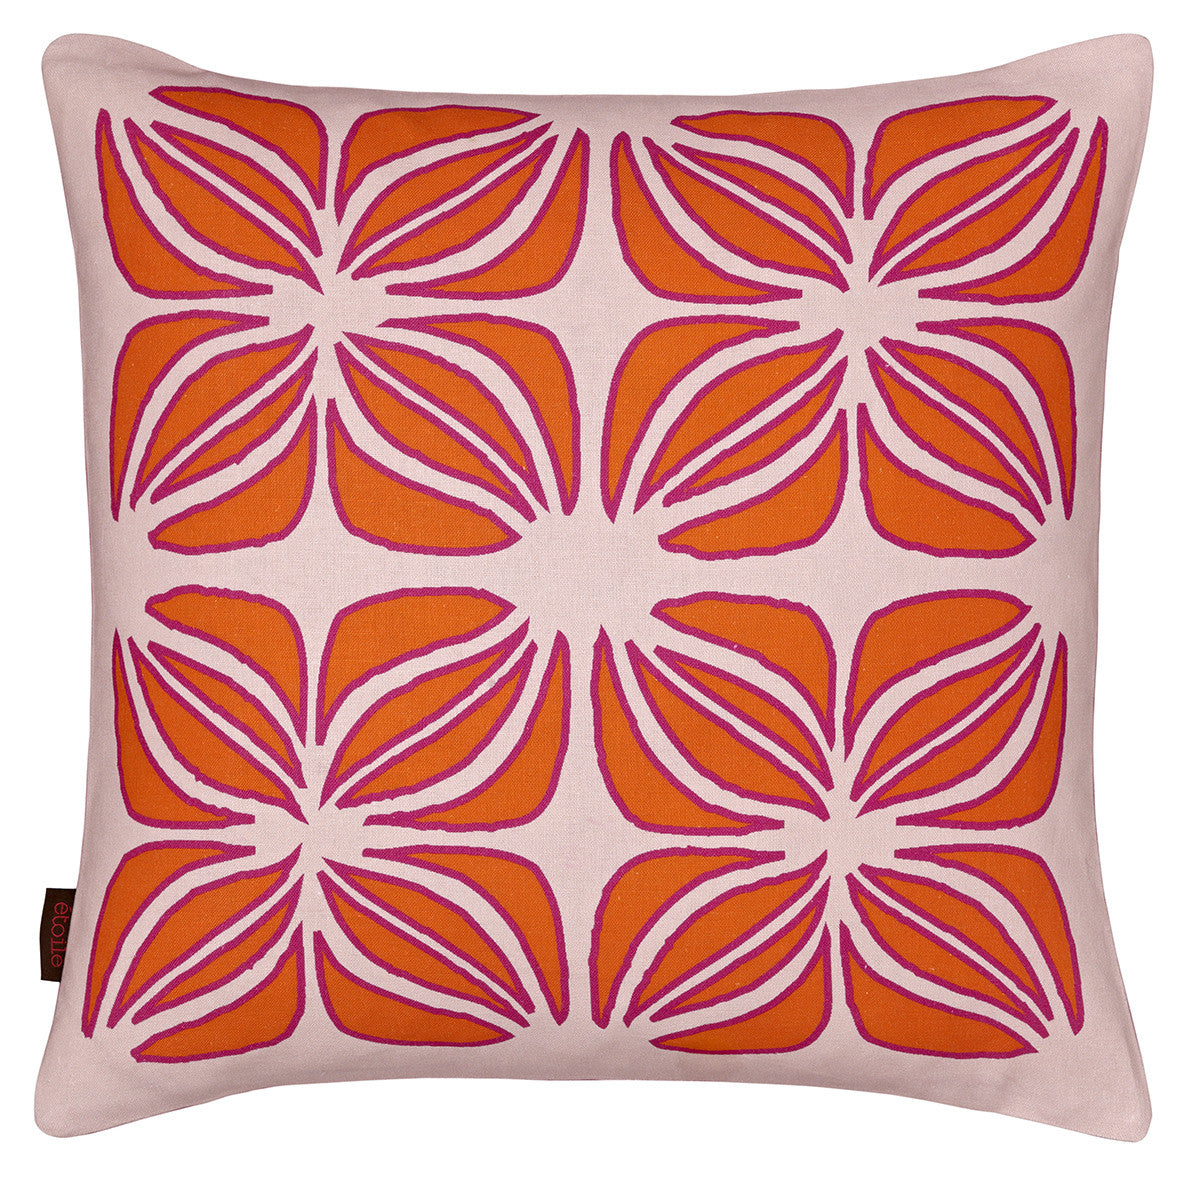 Nina Graphic Pattern Linen Cotton Cushion in Light Tea Rose Pink with Orange